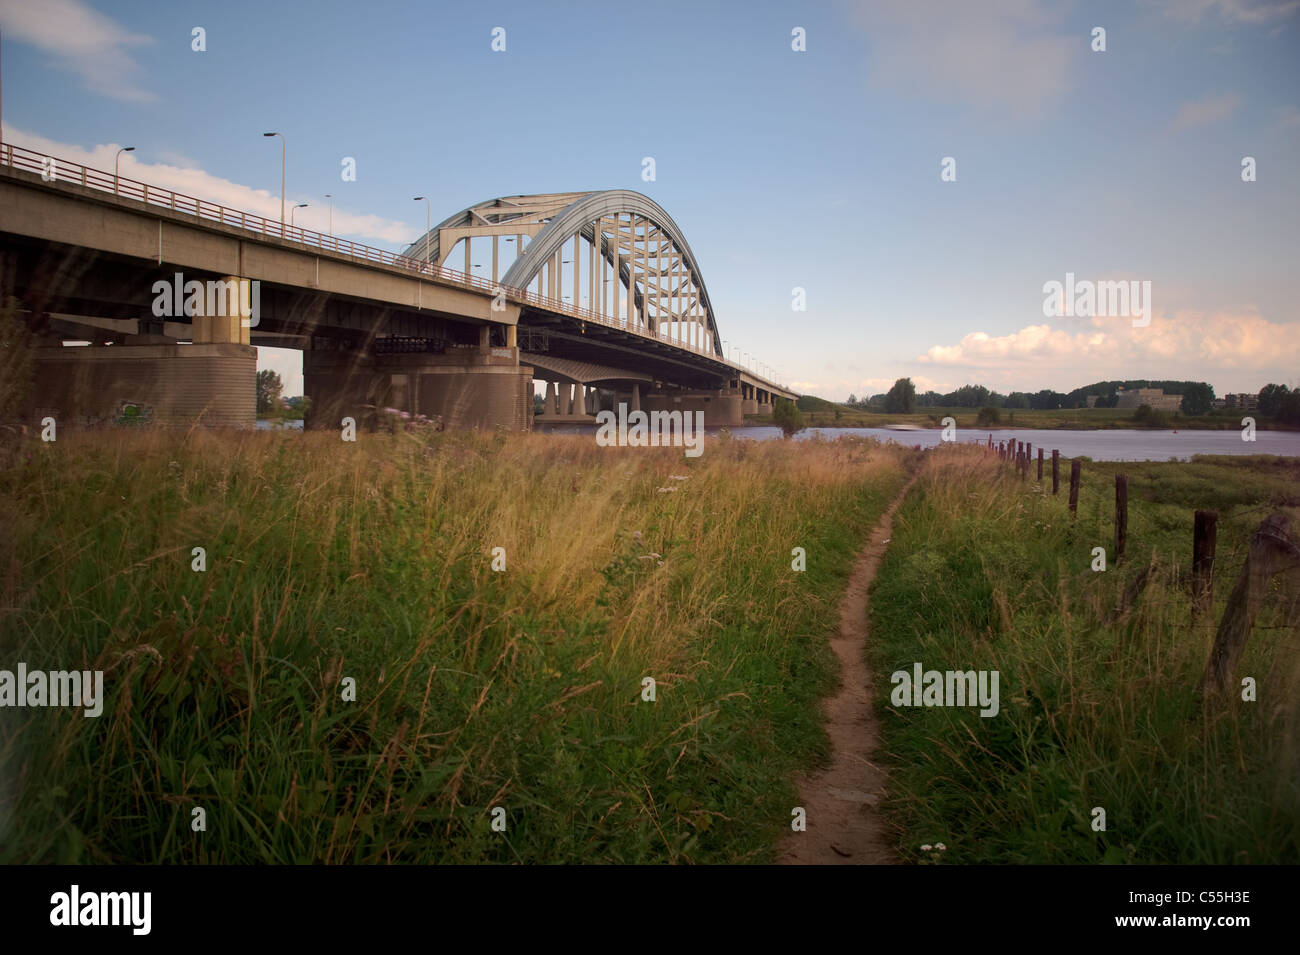 Bridge crossing river Lek with footpath in front - Stock Image